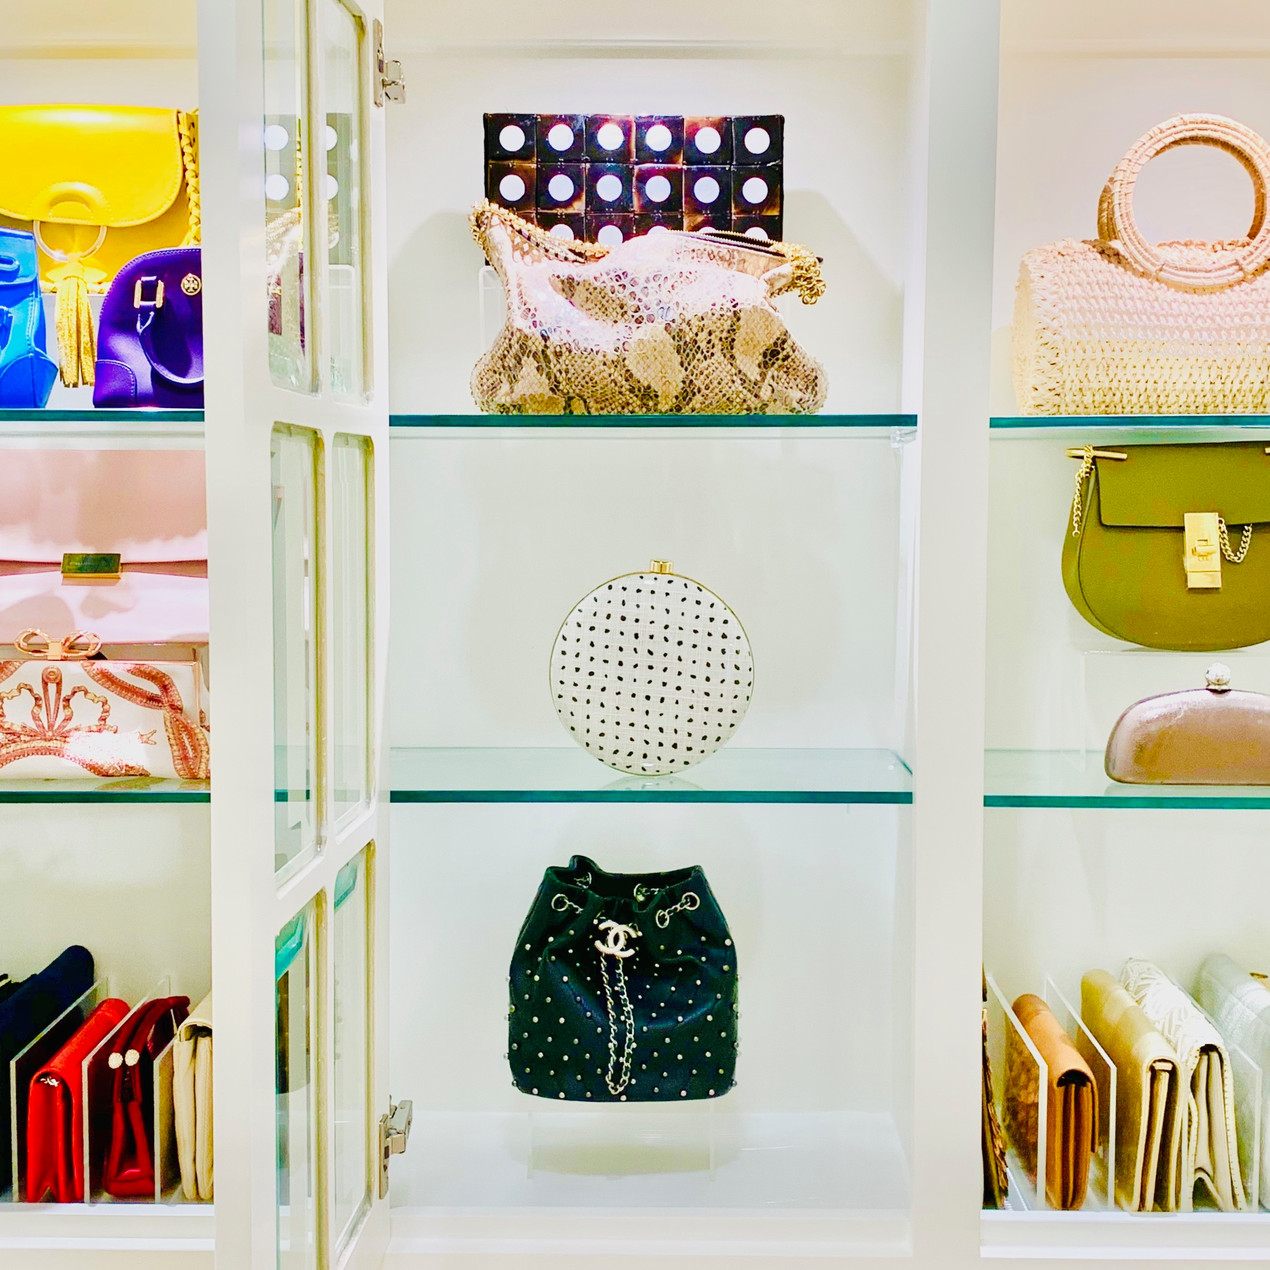 Closet organization by Jenny Dietsch at Getting it Done Organizing | Bags and purses on display in bright closet.